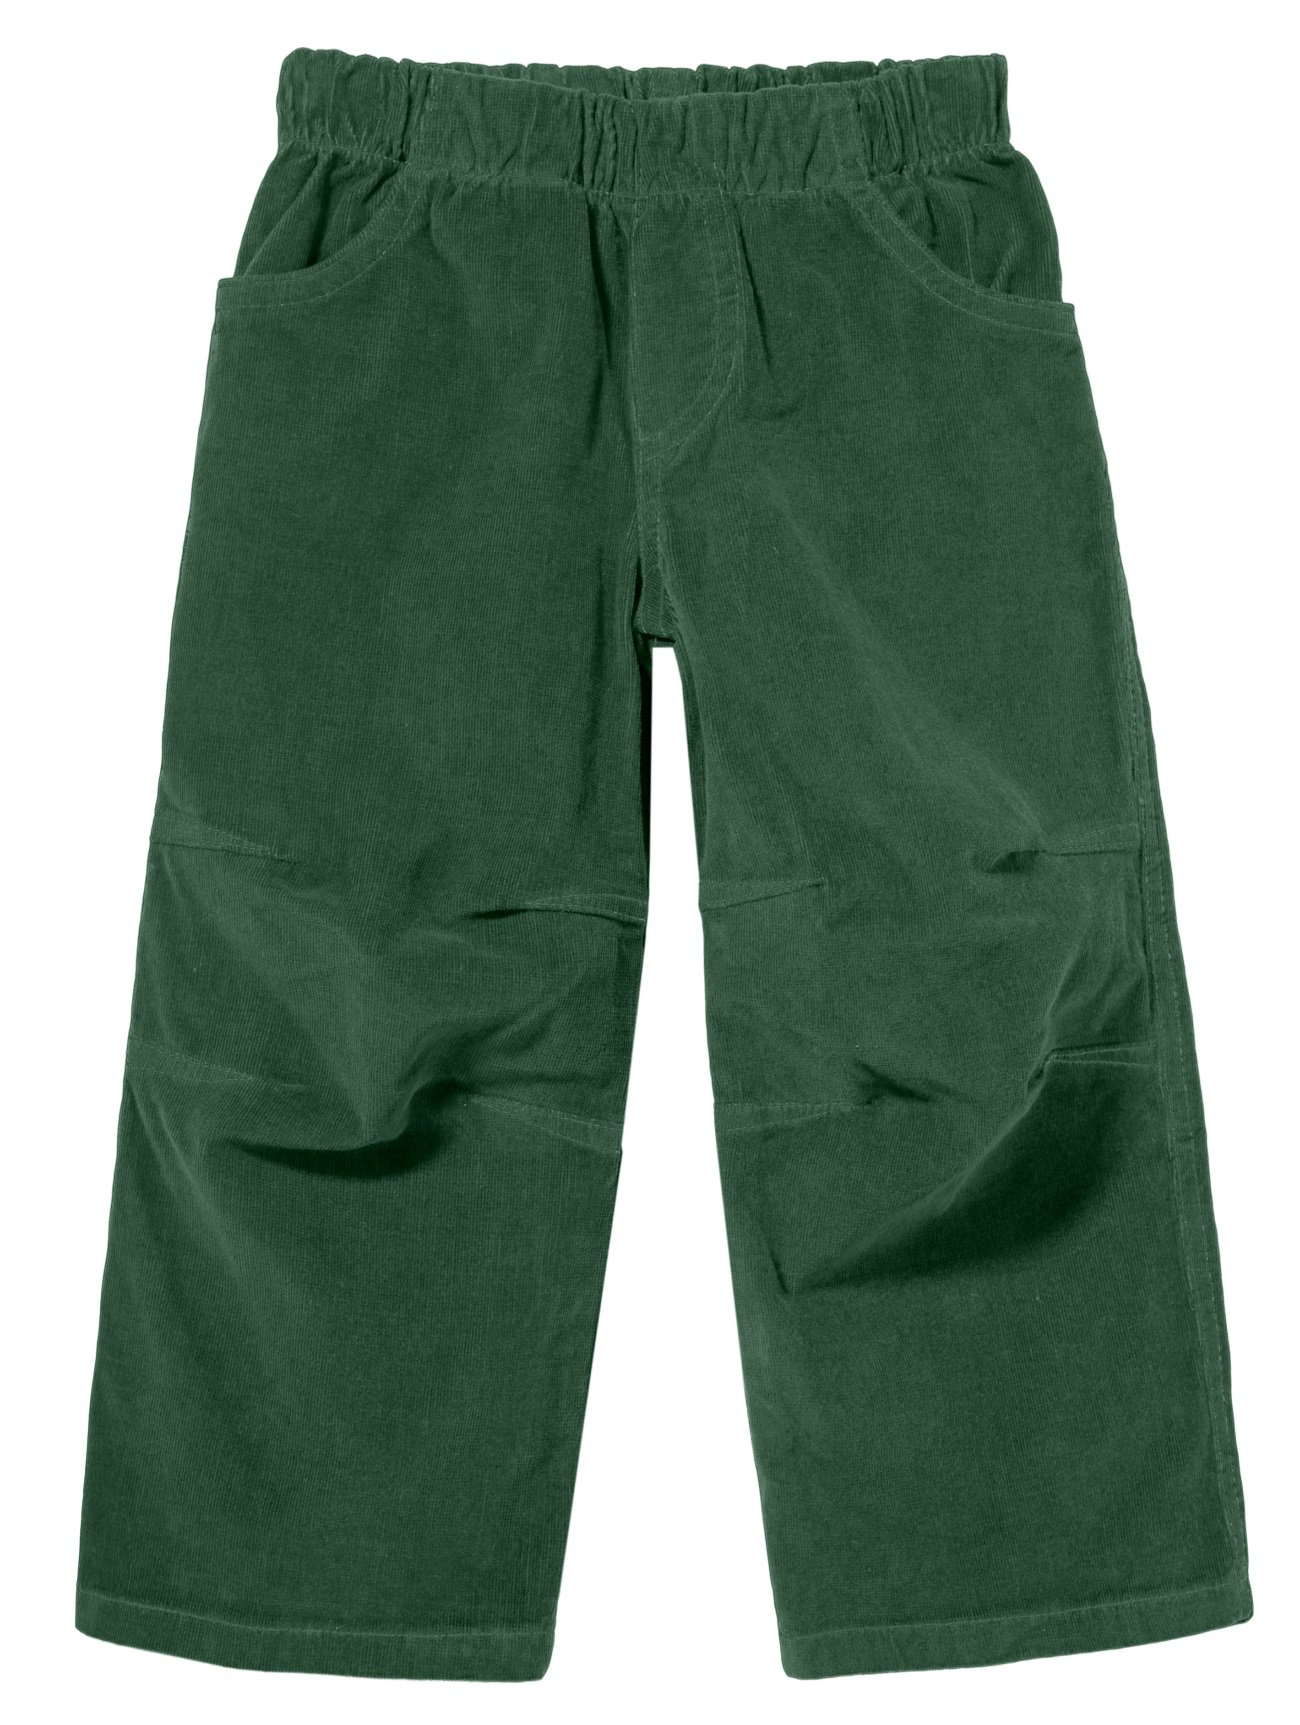 City Threads Boys' Corduroy Pull-Up Pants For School or Play; Comfortable For Active Children In For Sensitive Skin or Sensory Disorder - Forest Green - 7